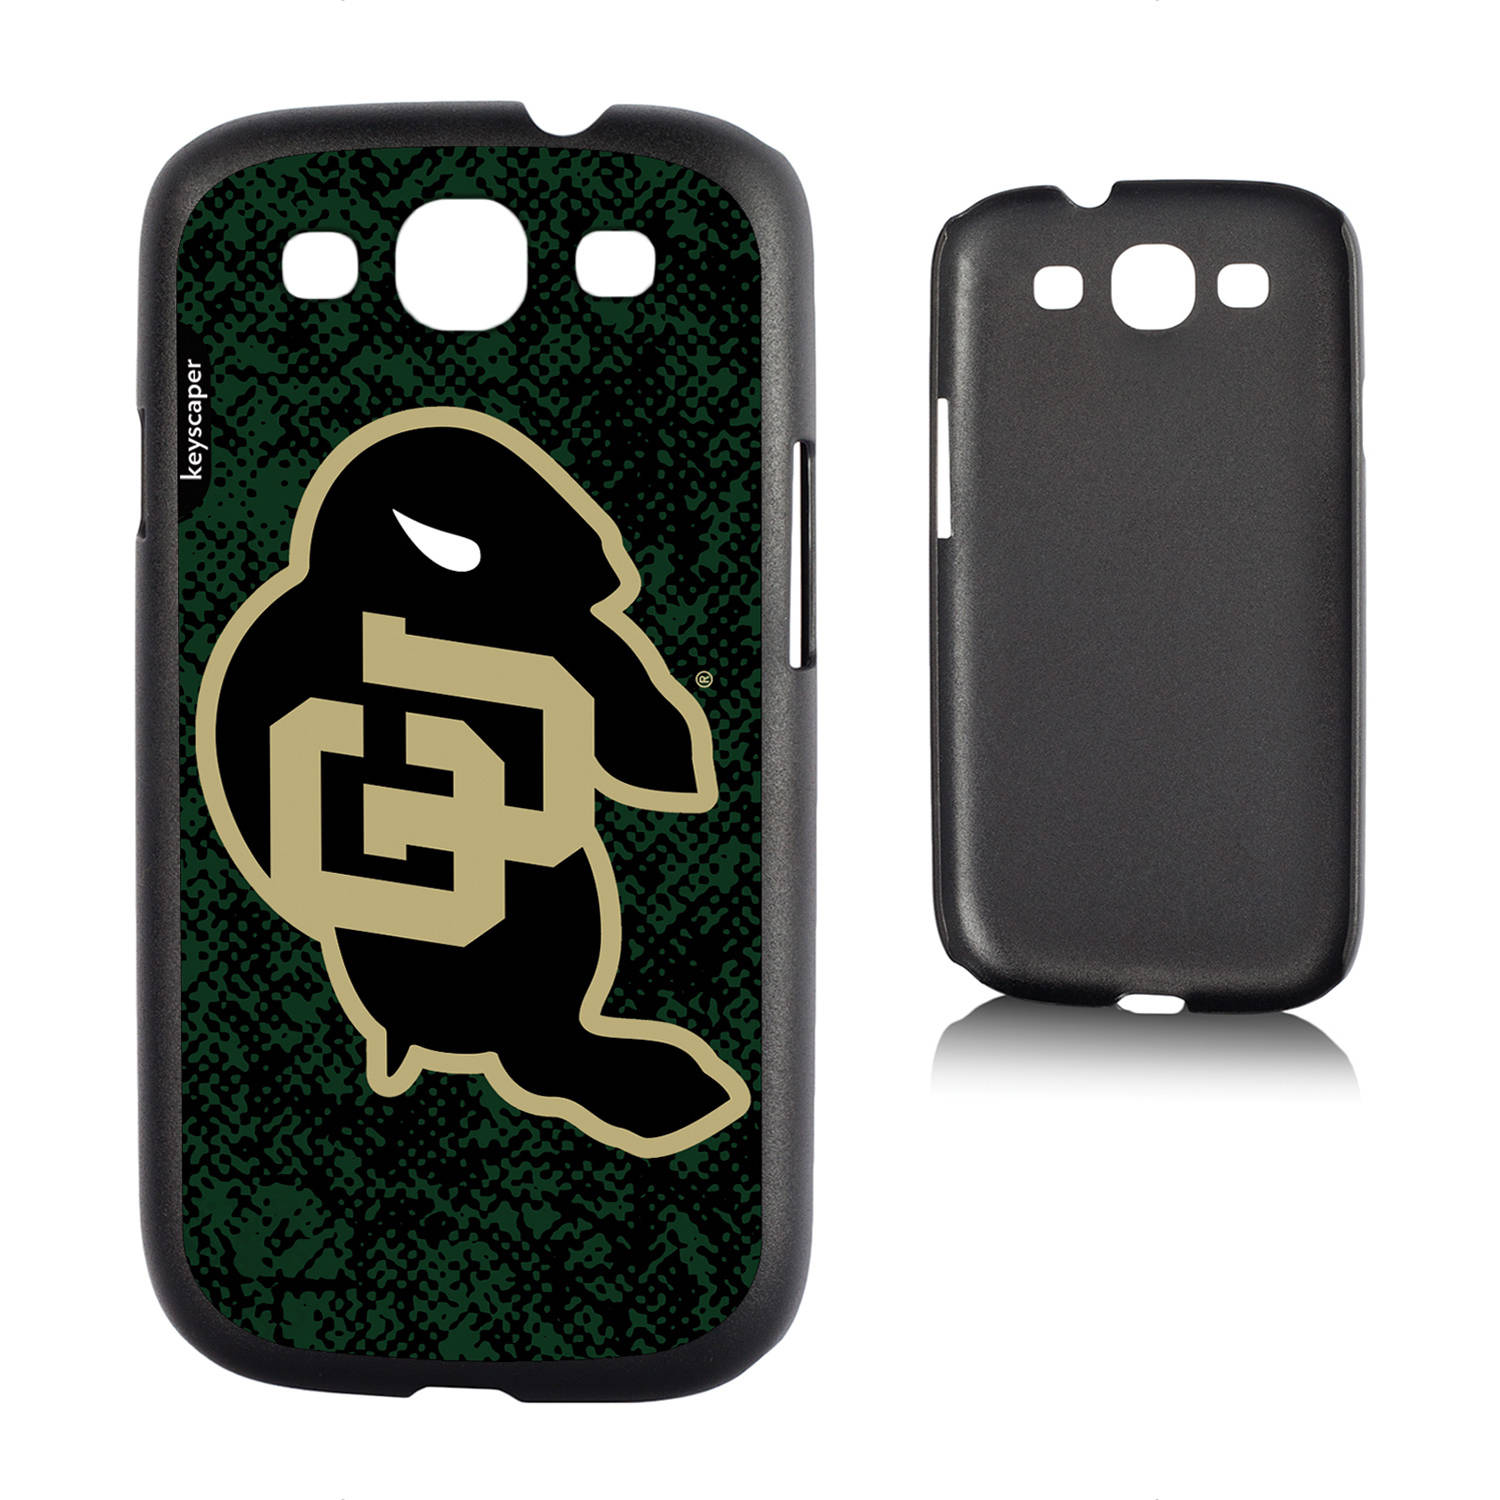 Colorado Buffaloes Galaxy S3 Slim Case